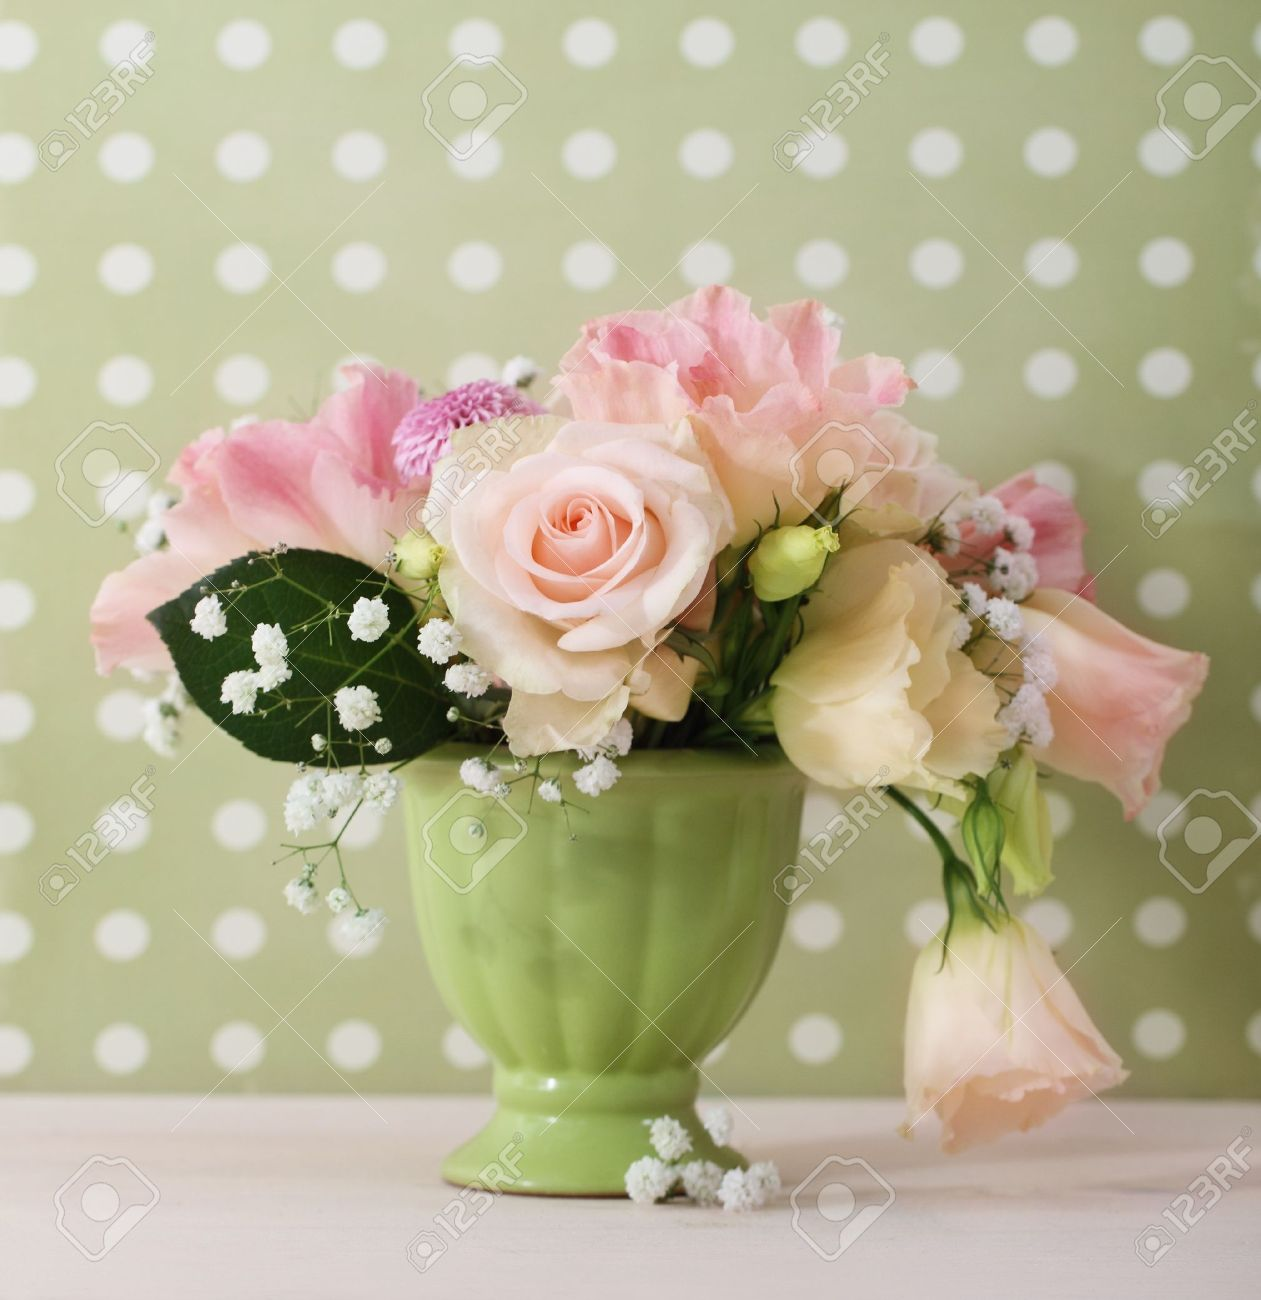 Bouquet of white and pink roses in the green vase stock photo bouquet of white and pink roses in the green vase stock photo 10759691 reviewsmspy